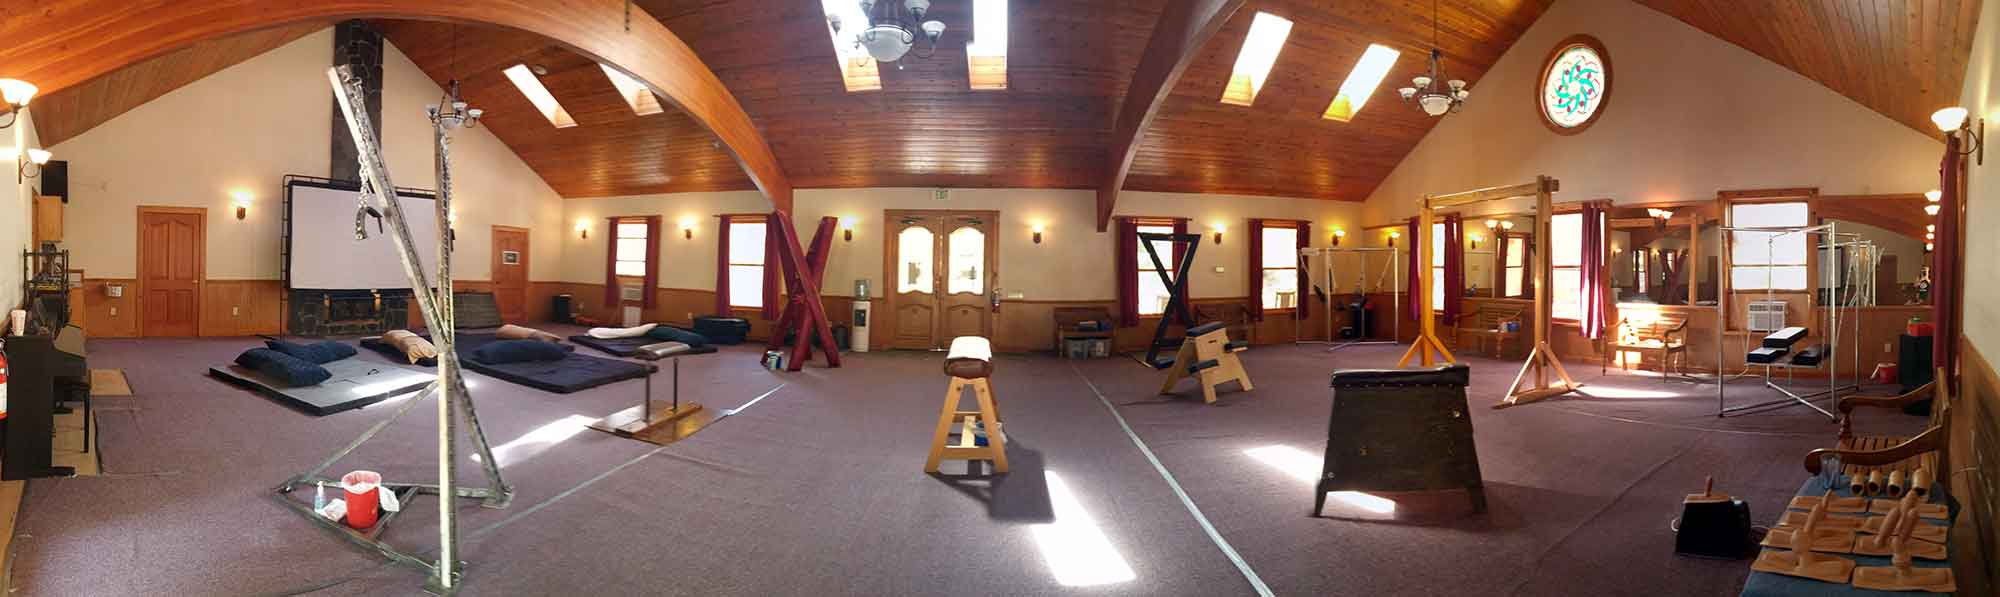 Boundless panoramic view of the dungeon space